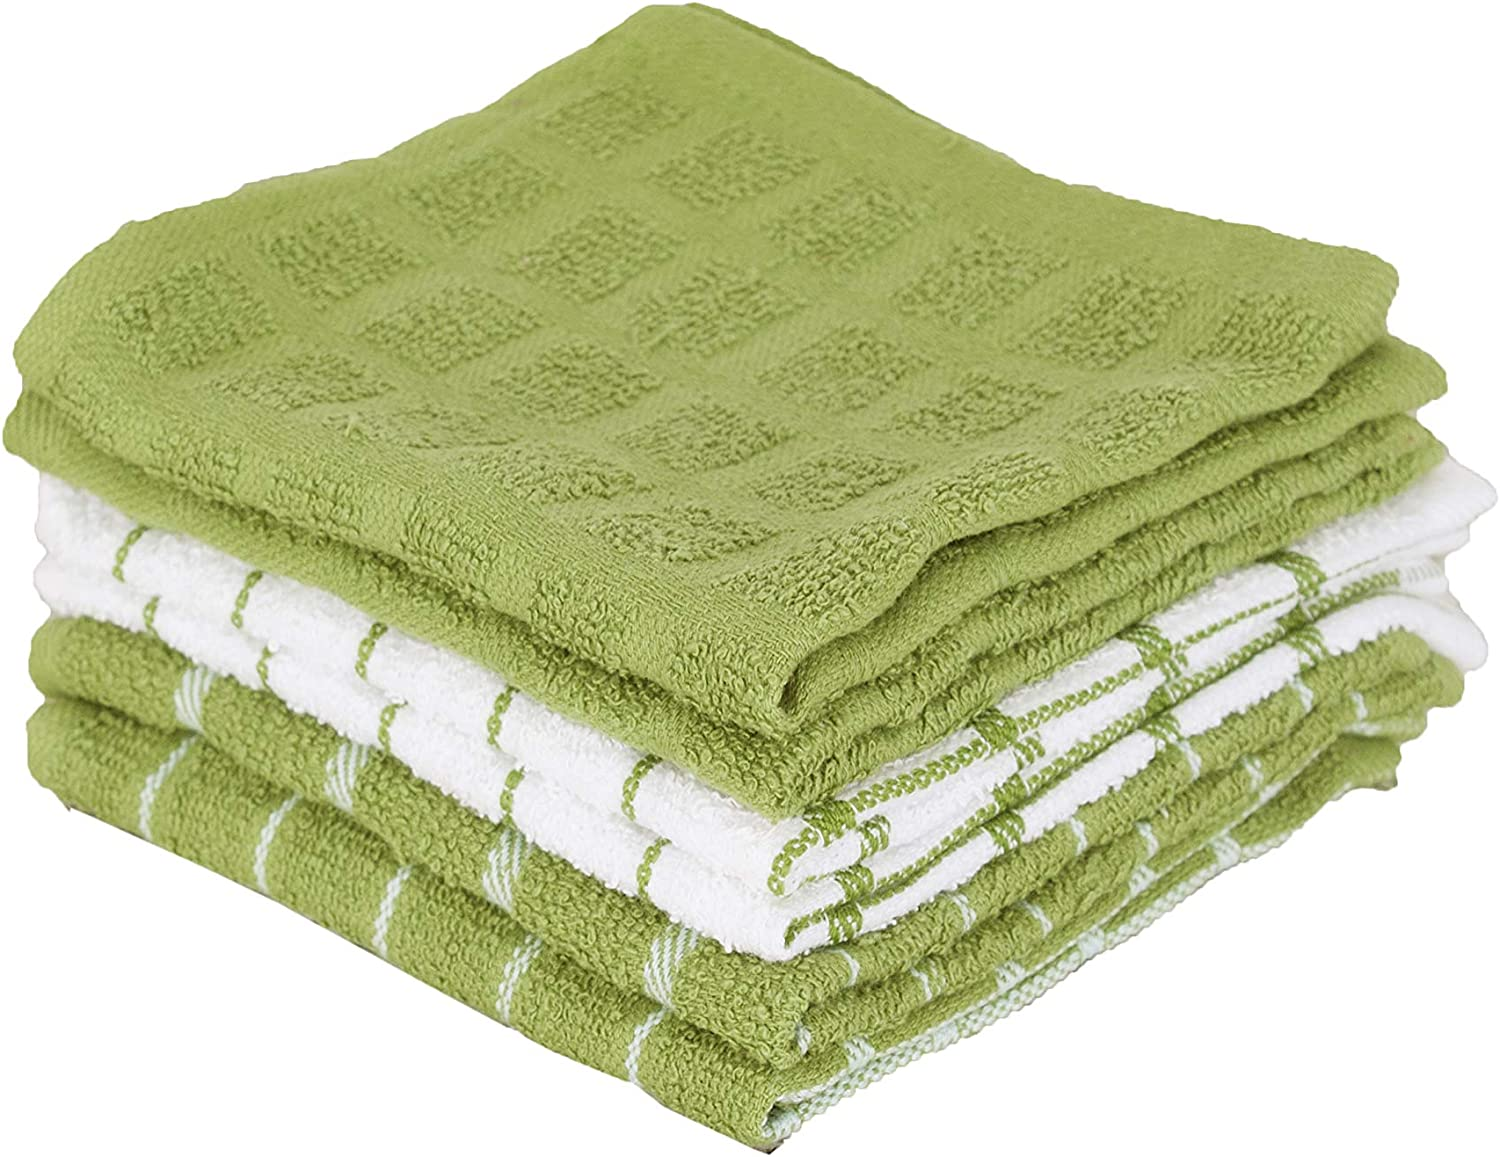 2-Pack Cactus Green Kitchen Hot Pad Ritz Royale Collection 100/% Cotton Terry Cloth Pot Holder Set